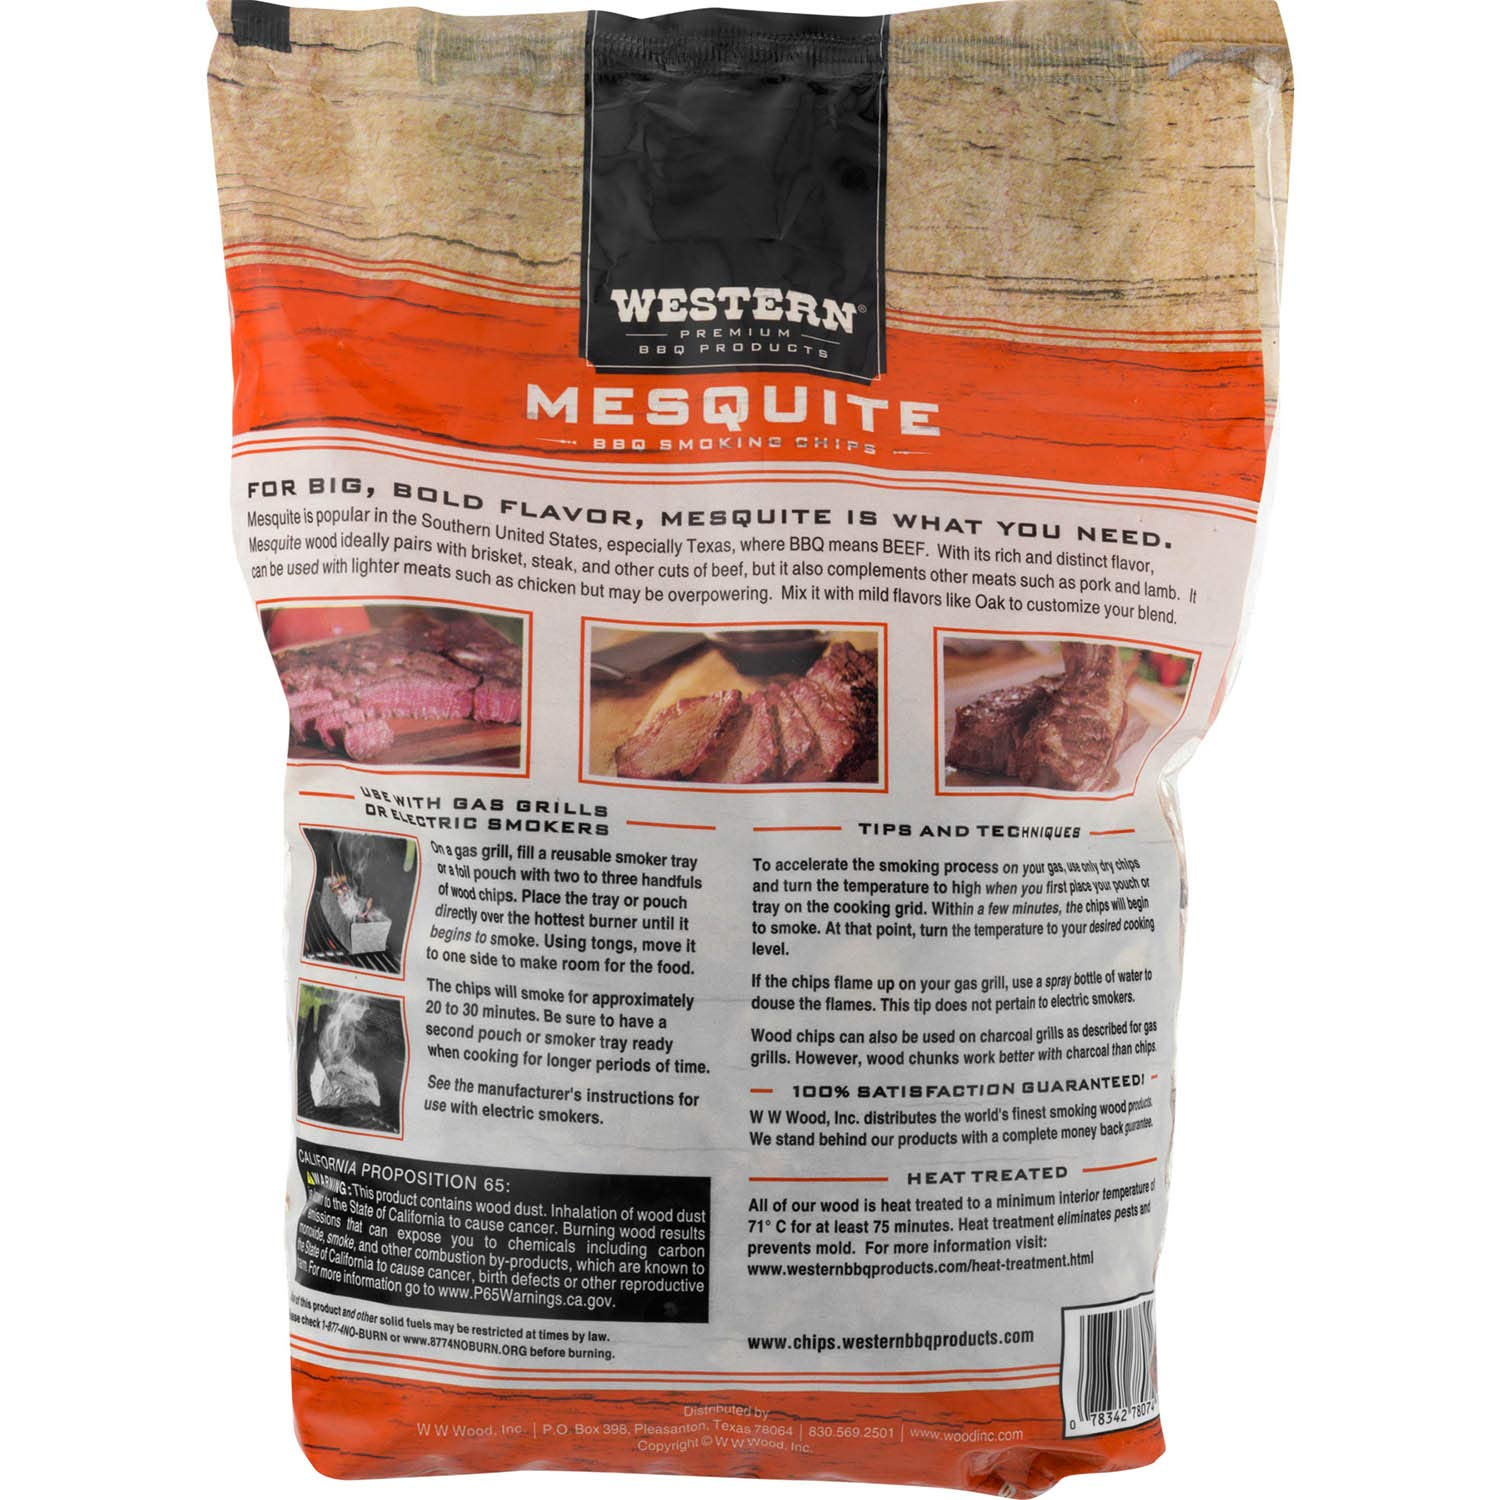 Western Premium BBQ Products Mesquite Smoking Chips, 6 Pack